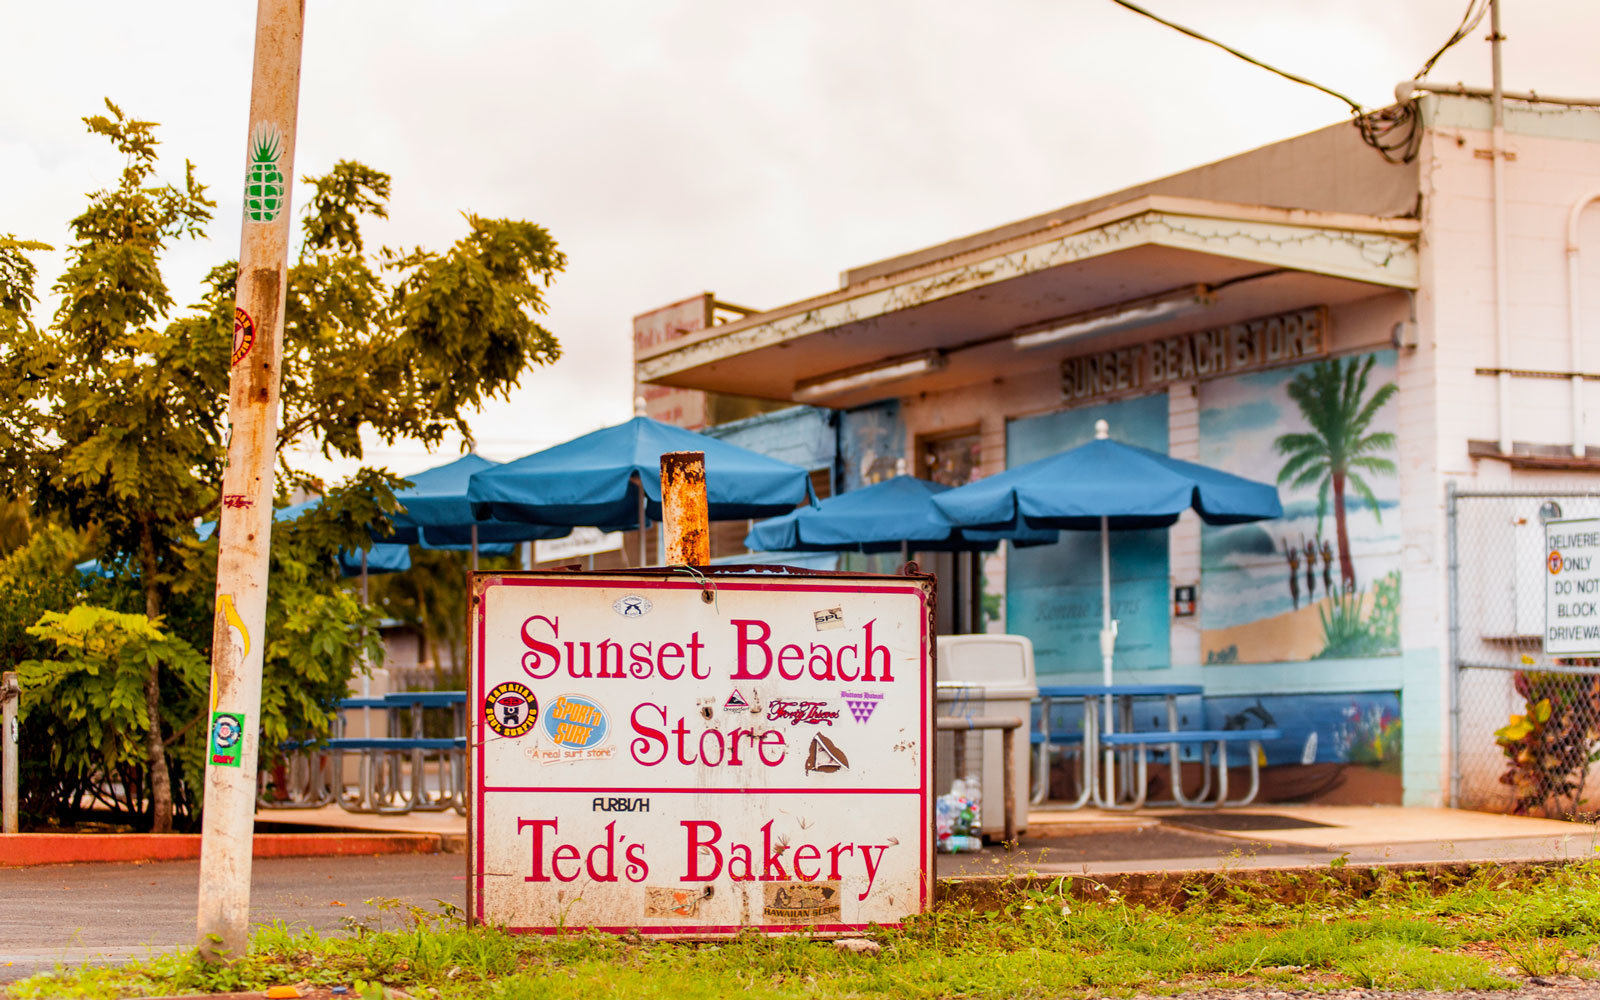 Ted's Bakery in Oahu